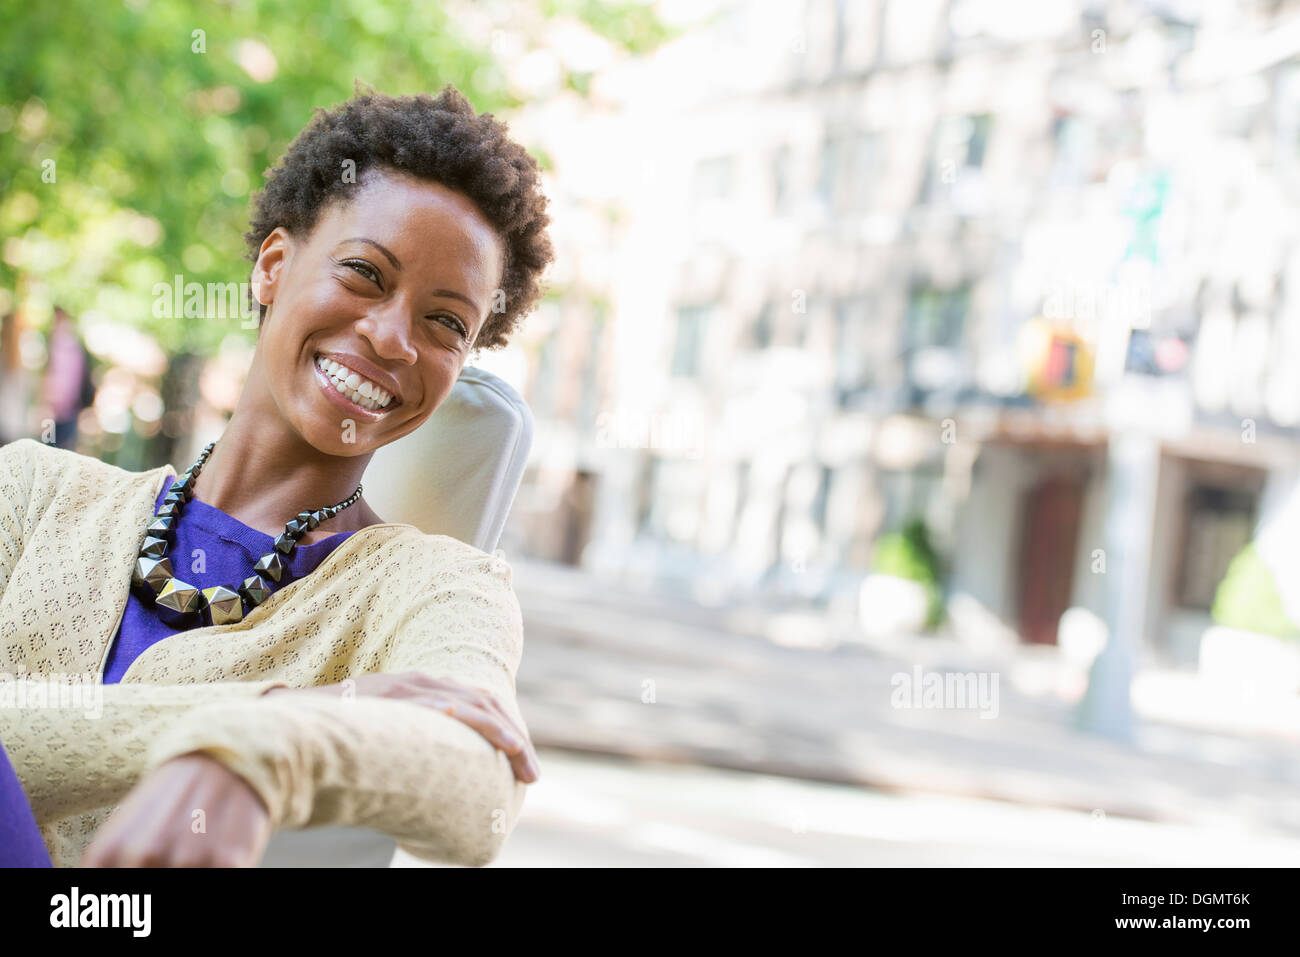 City life. A woman sitting in the open air in a city park. - Stock Image